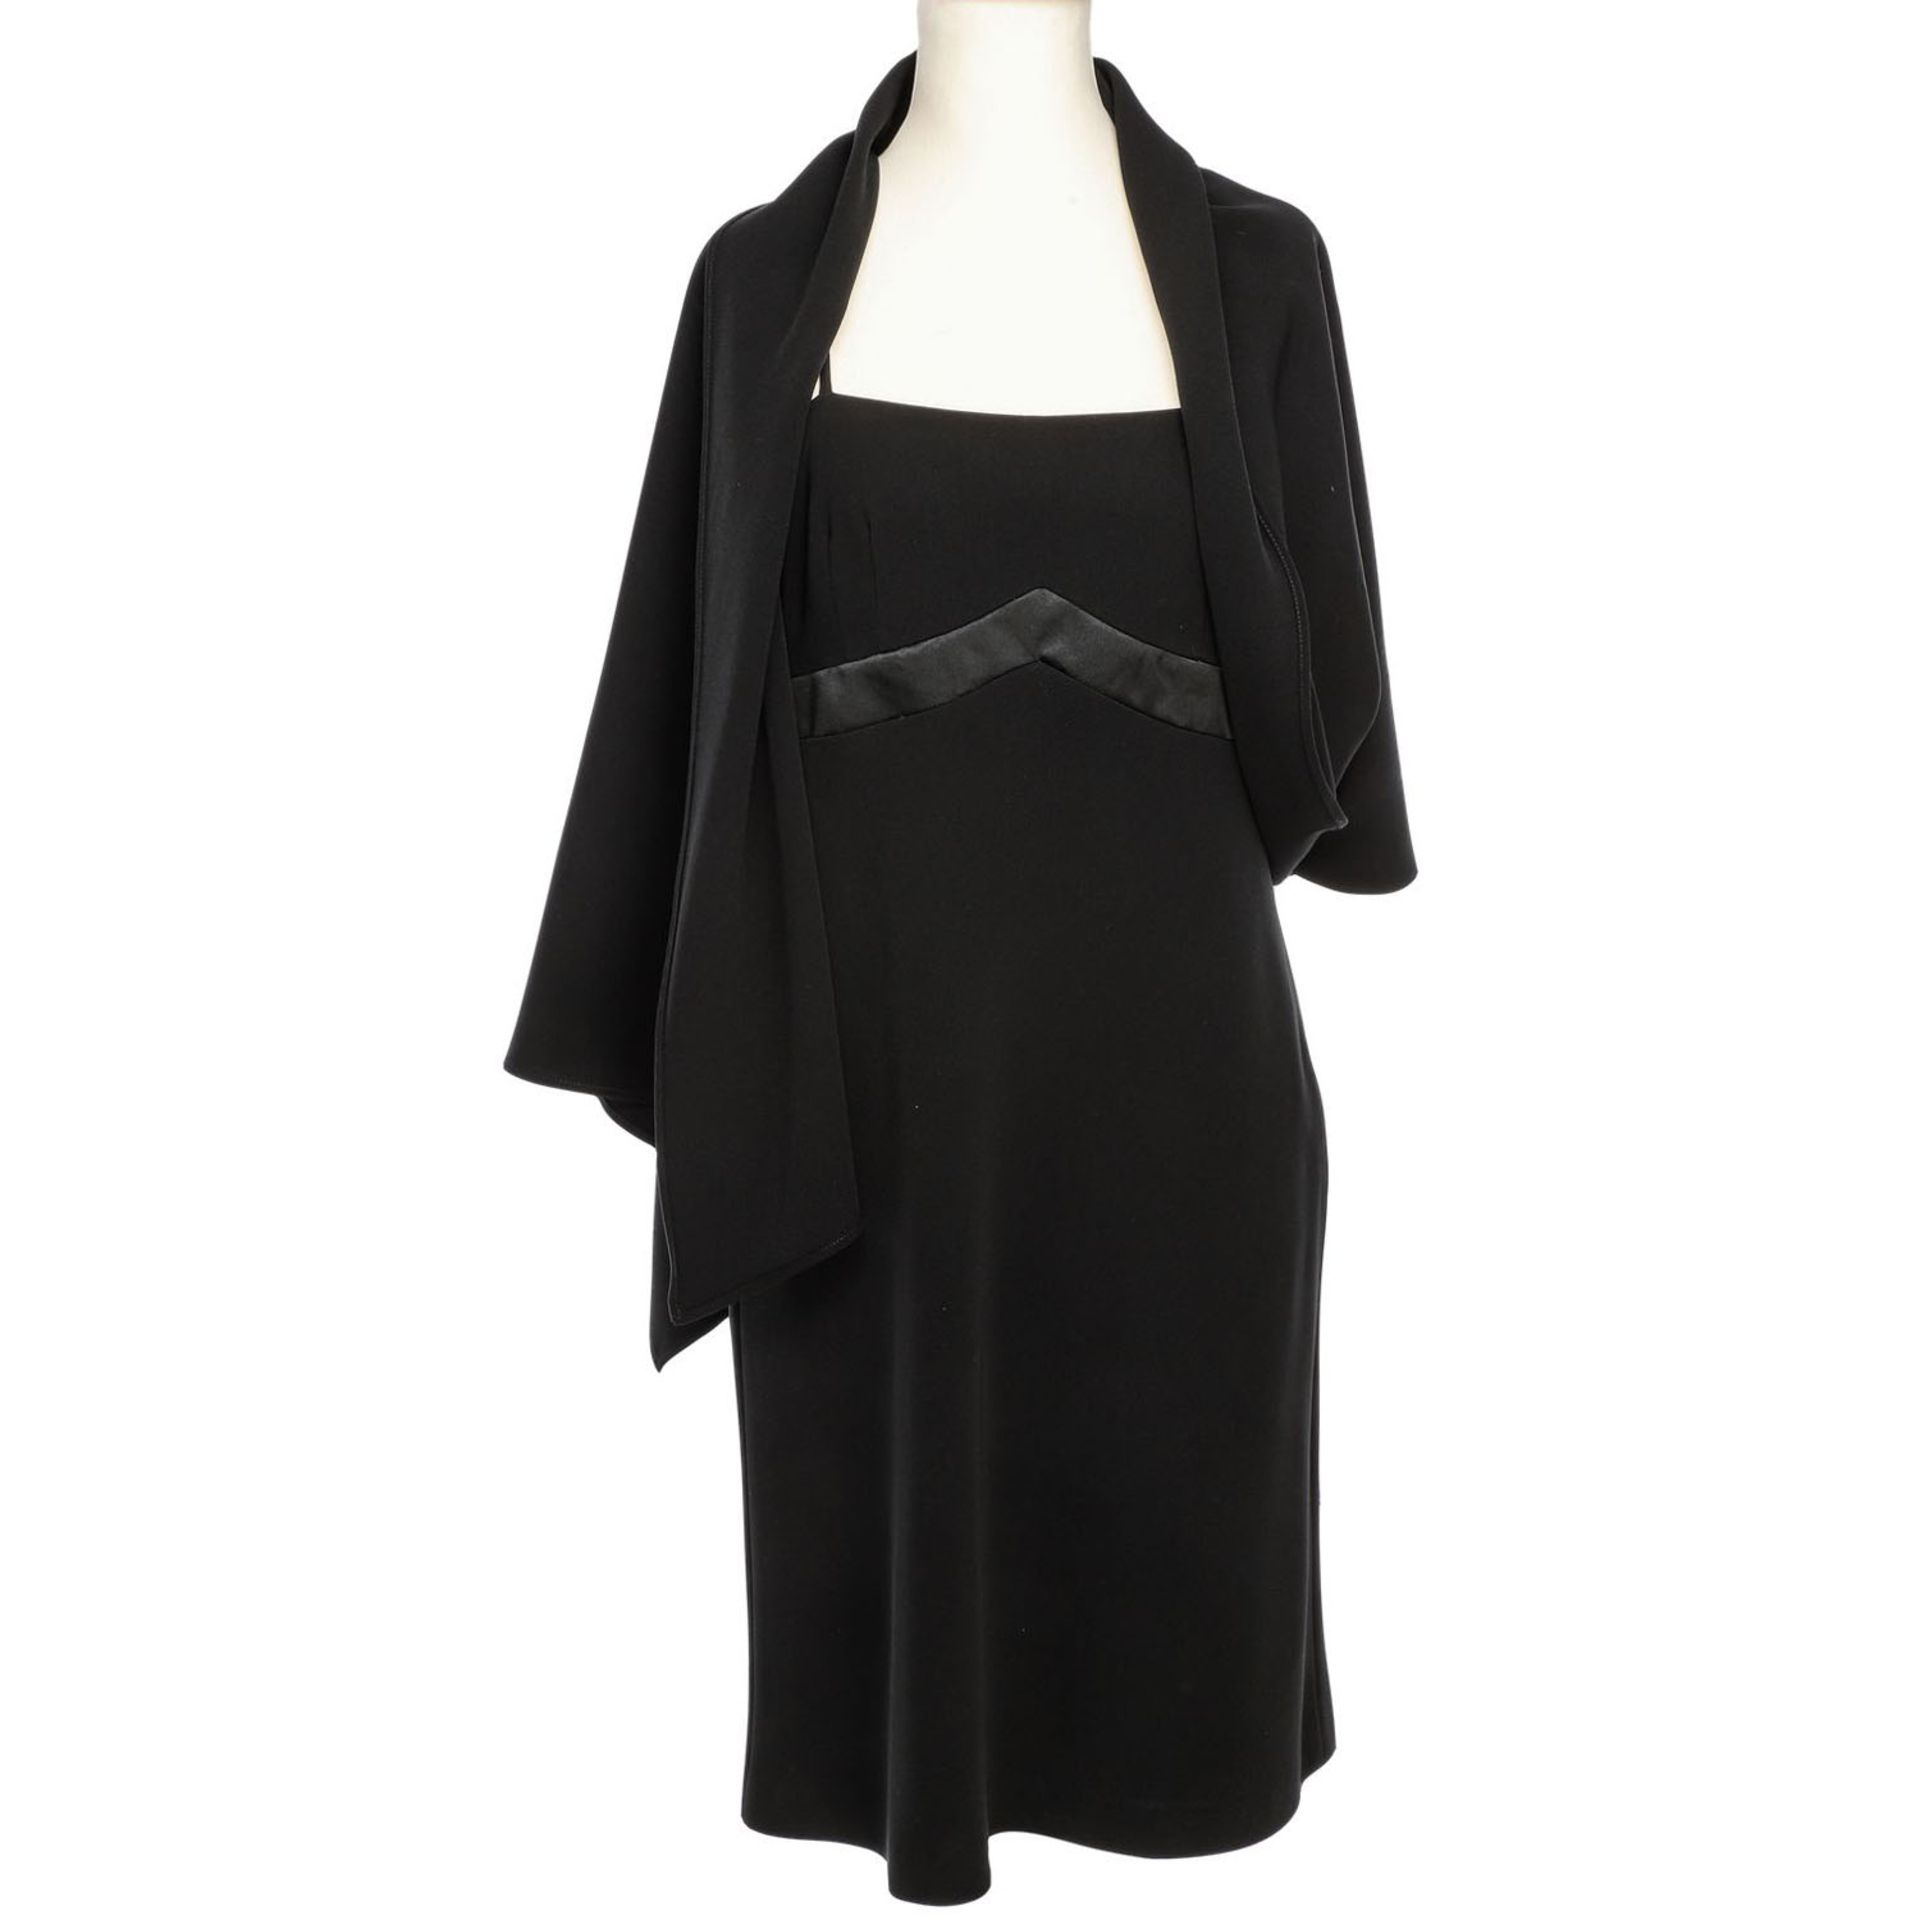 MOSCHINO COUTURE VINTAGE Kleid, Gr. 40.